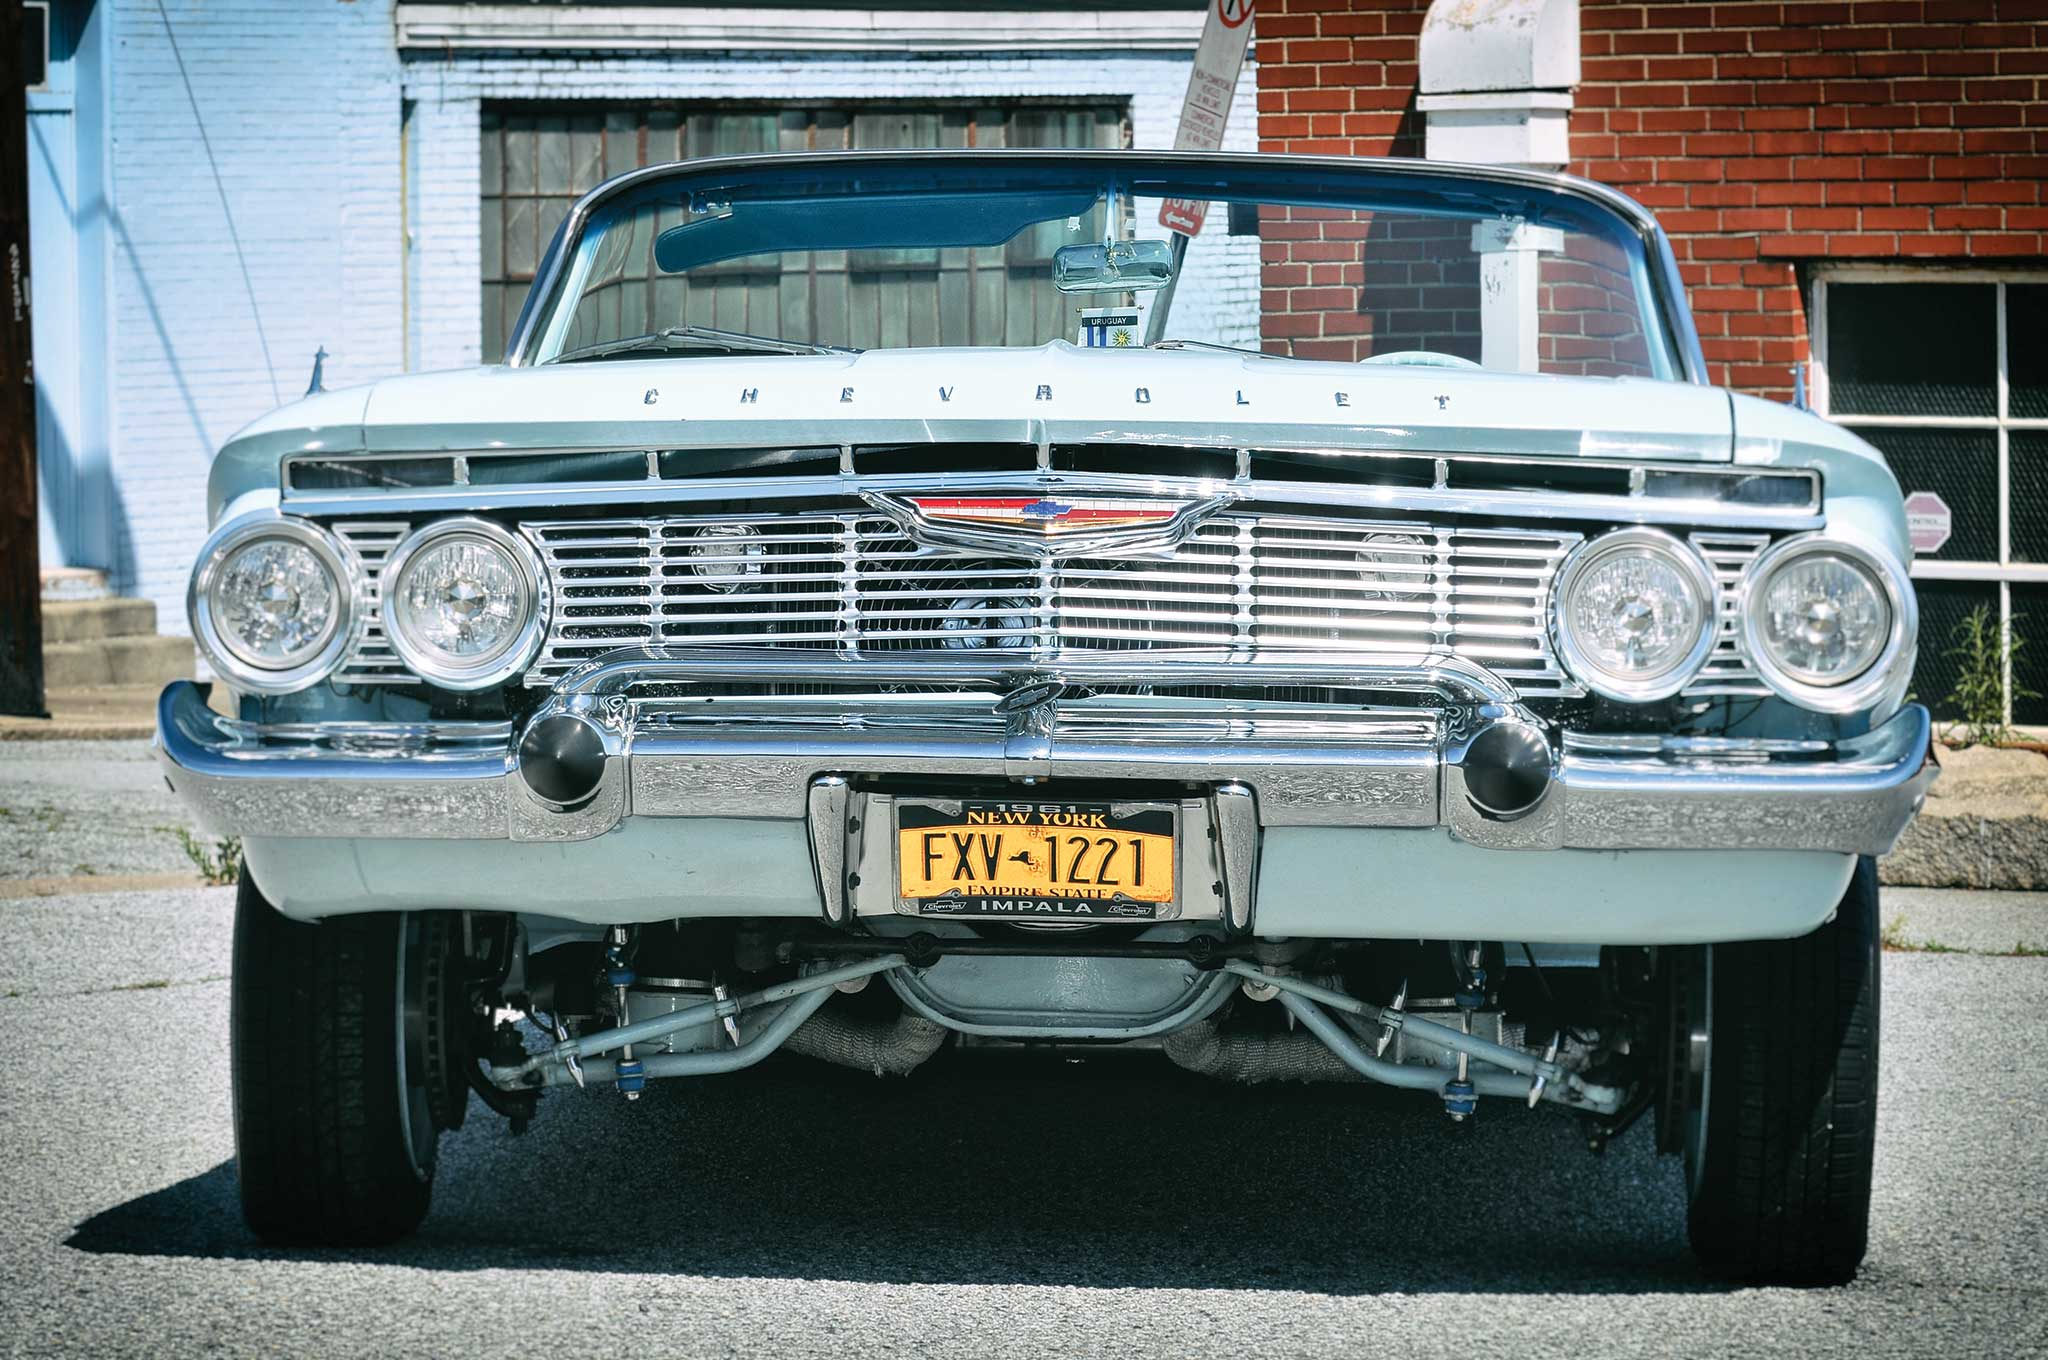 1961 chevrolet impala convertible big boy toy lowrider 812 publicscrutiny Image collections